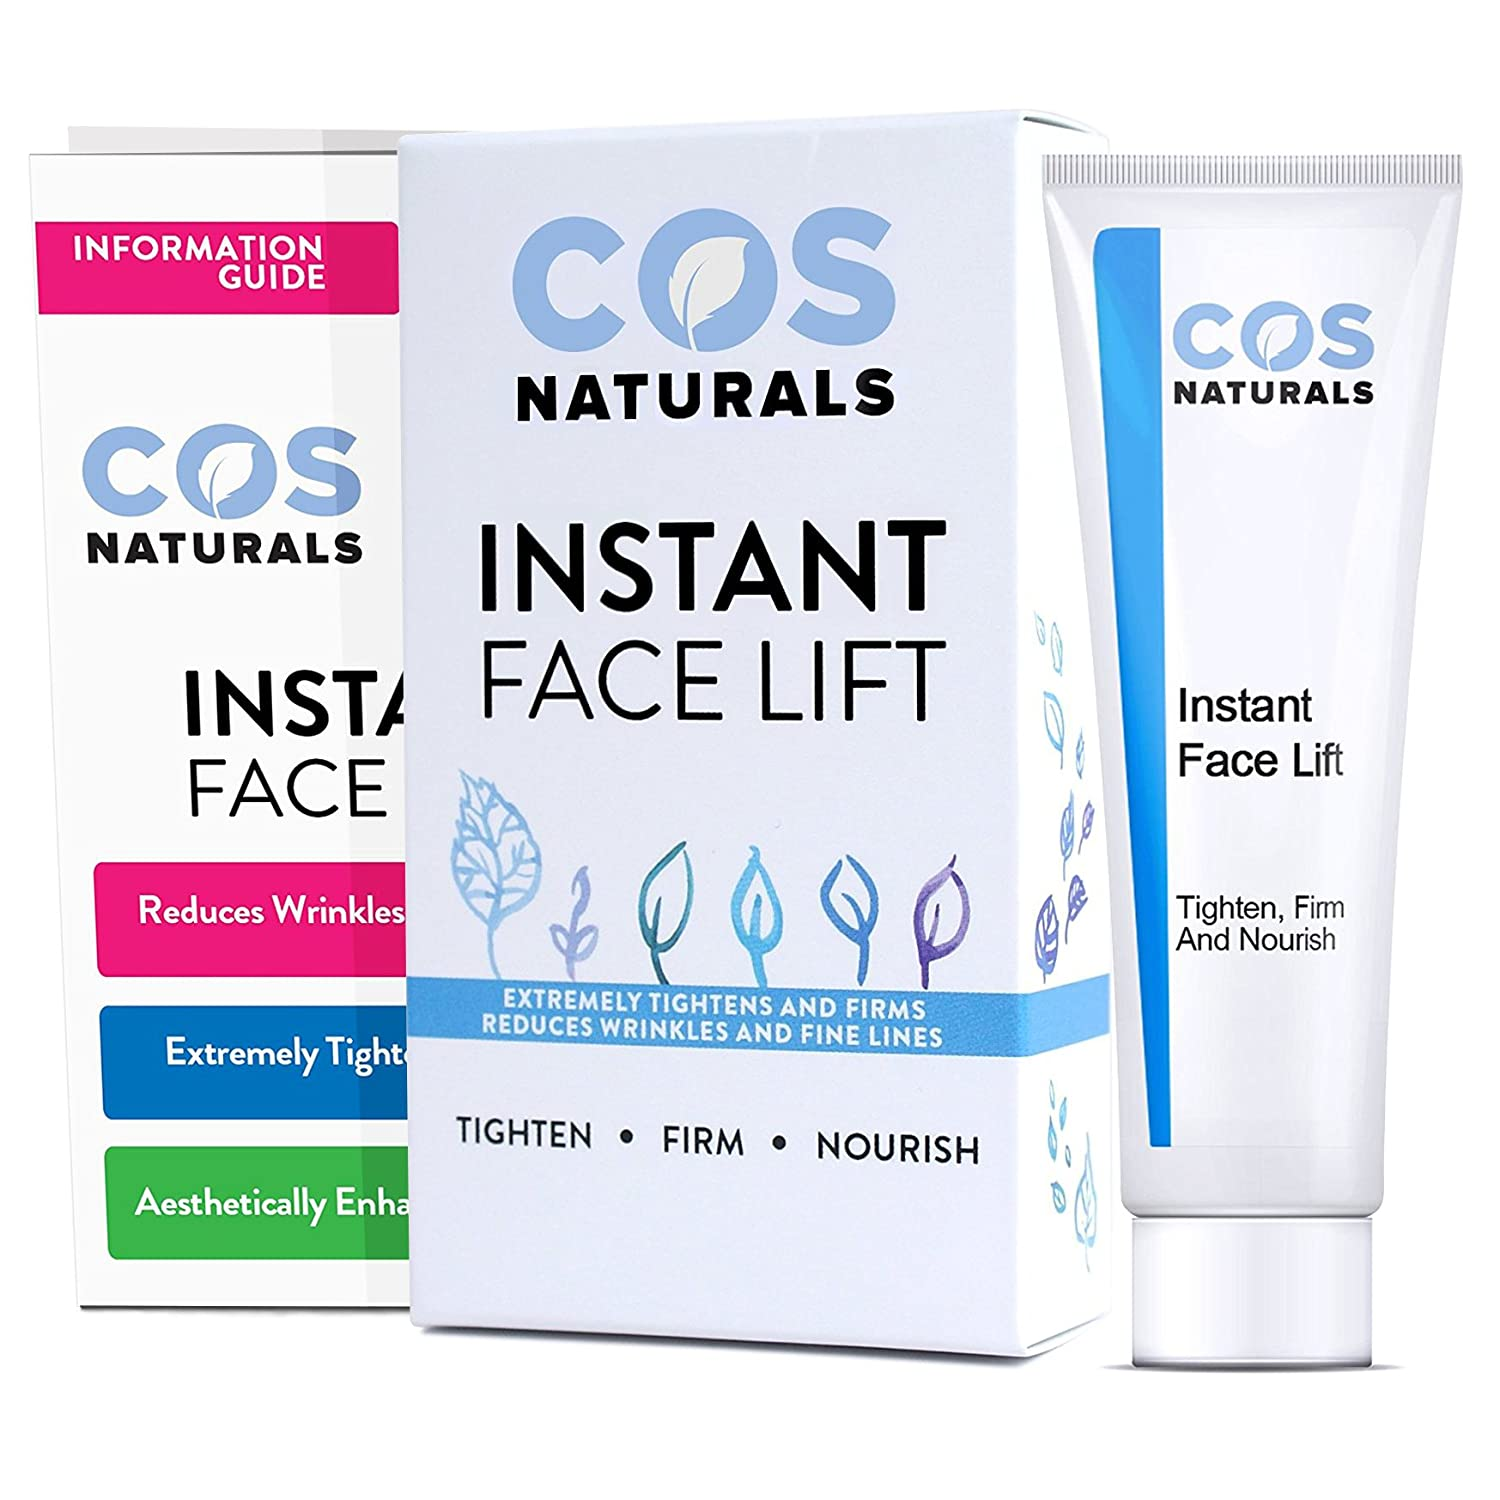 COS Naturals INSTANT FACE LIFT Tighten Firm And Nourish Natural Organic Ingredients Anti Wrinkle Cream Remove Signs of Aging Fine Lines Eye Puffiness Dark Circles Bags Wrinkles 30mL 1 fl oz COSNATURALS SKIN CARE COS-LIFT